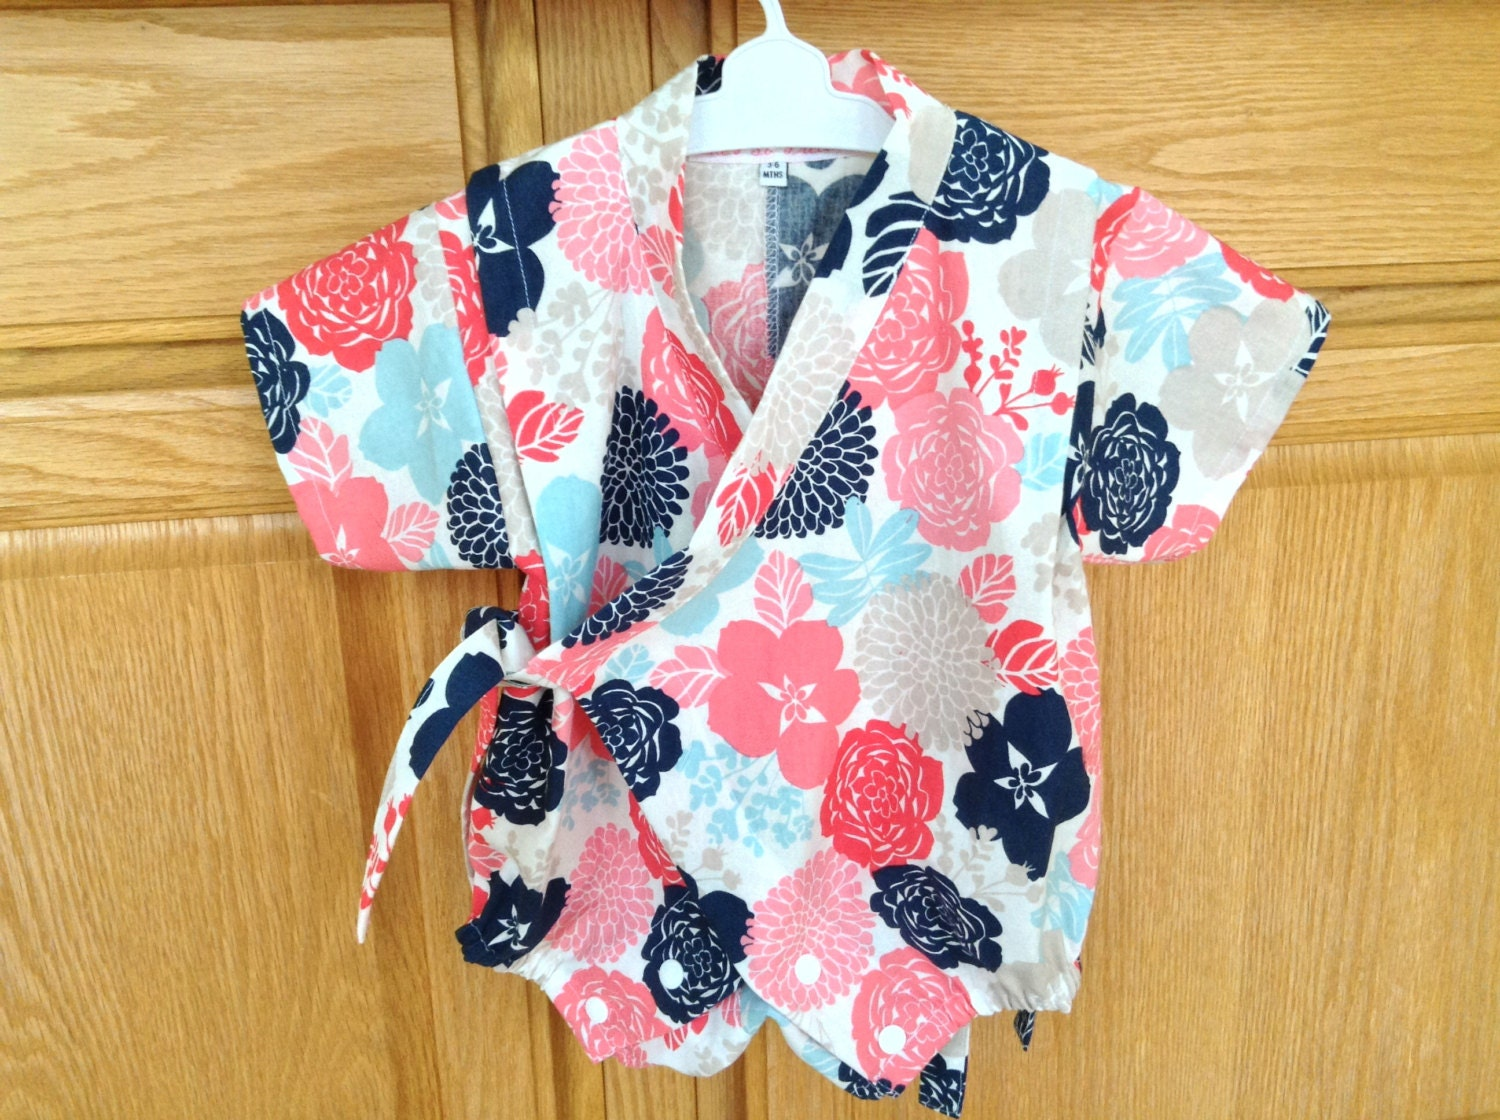 Ringer kimono style onesies w mittens are practical and comfortable - % cotton - The hospitals choice.